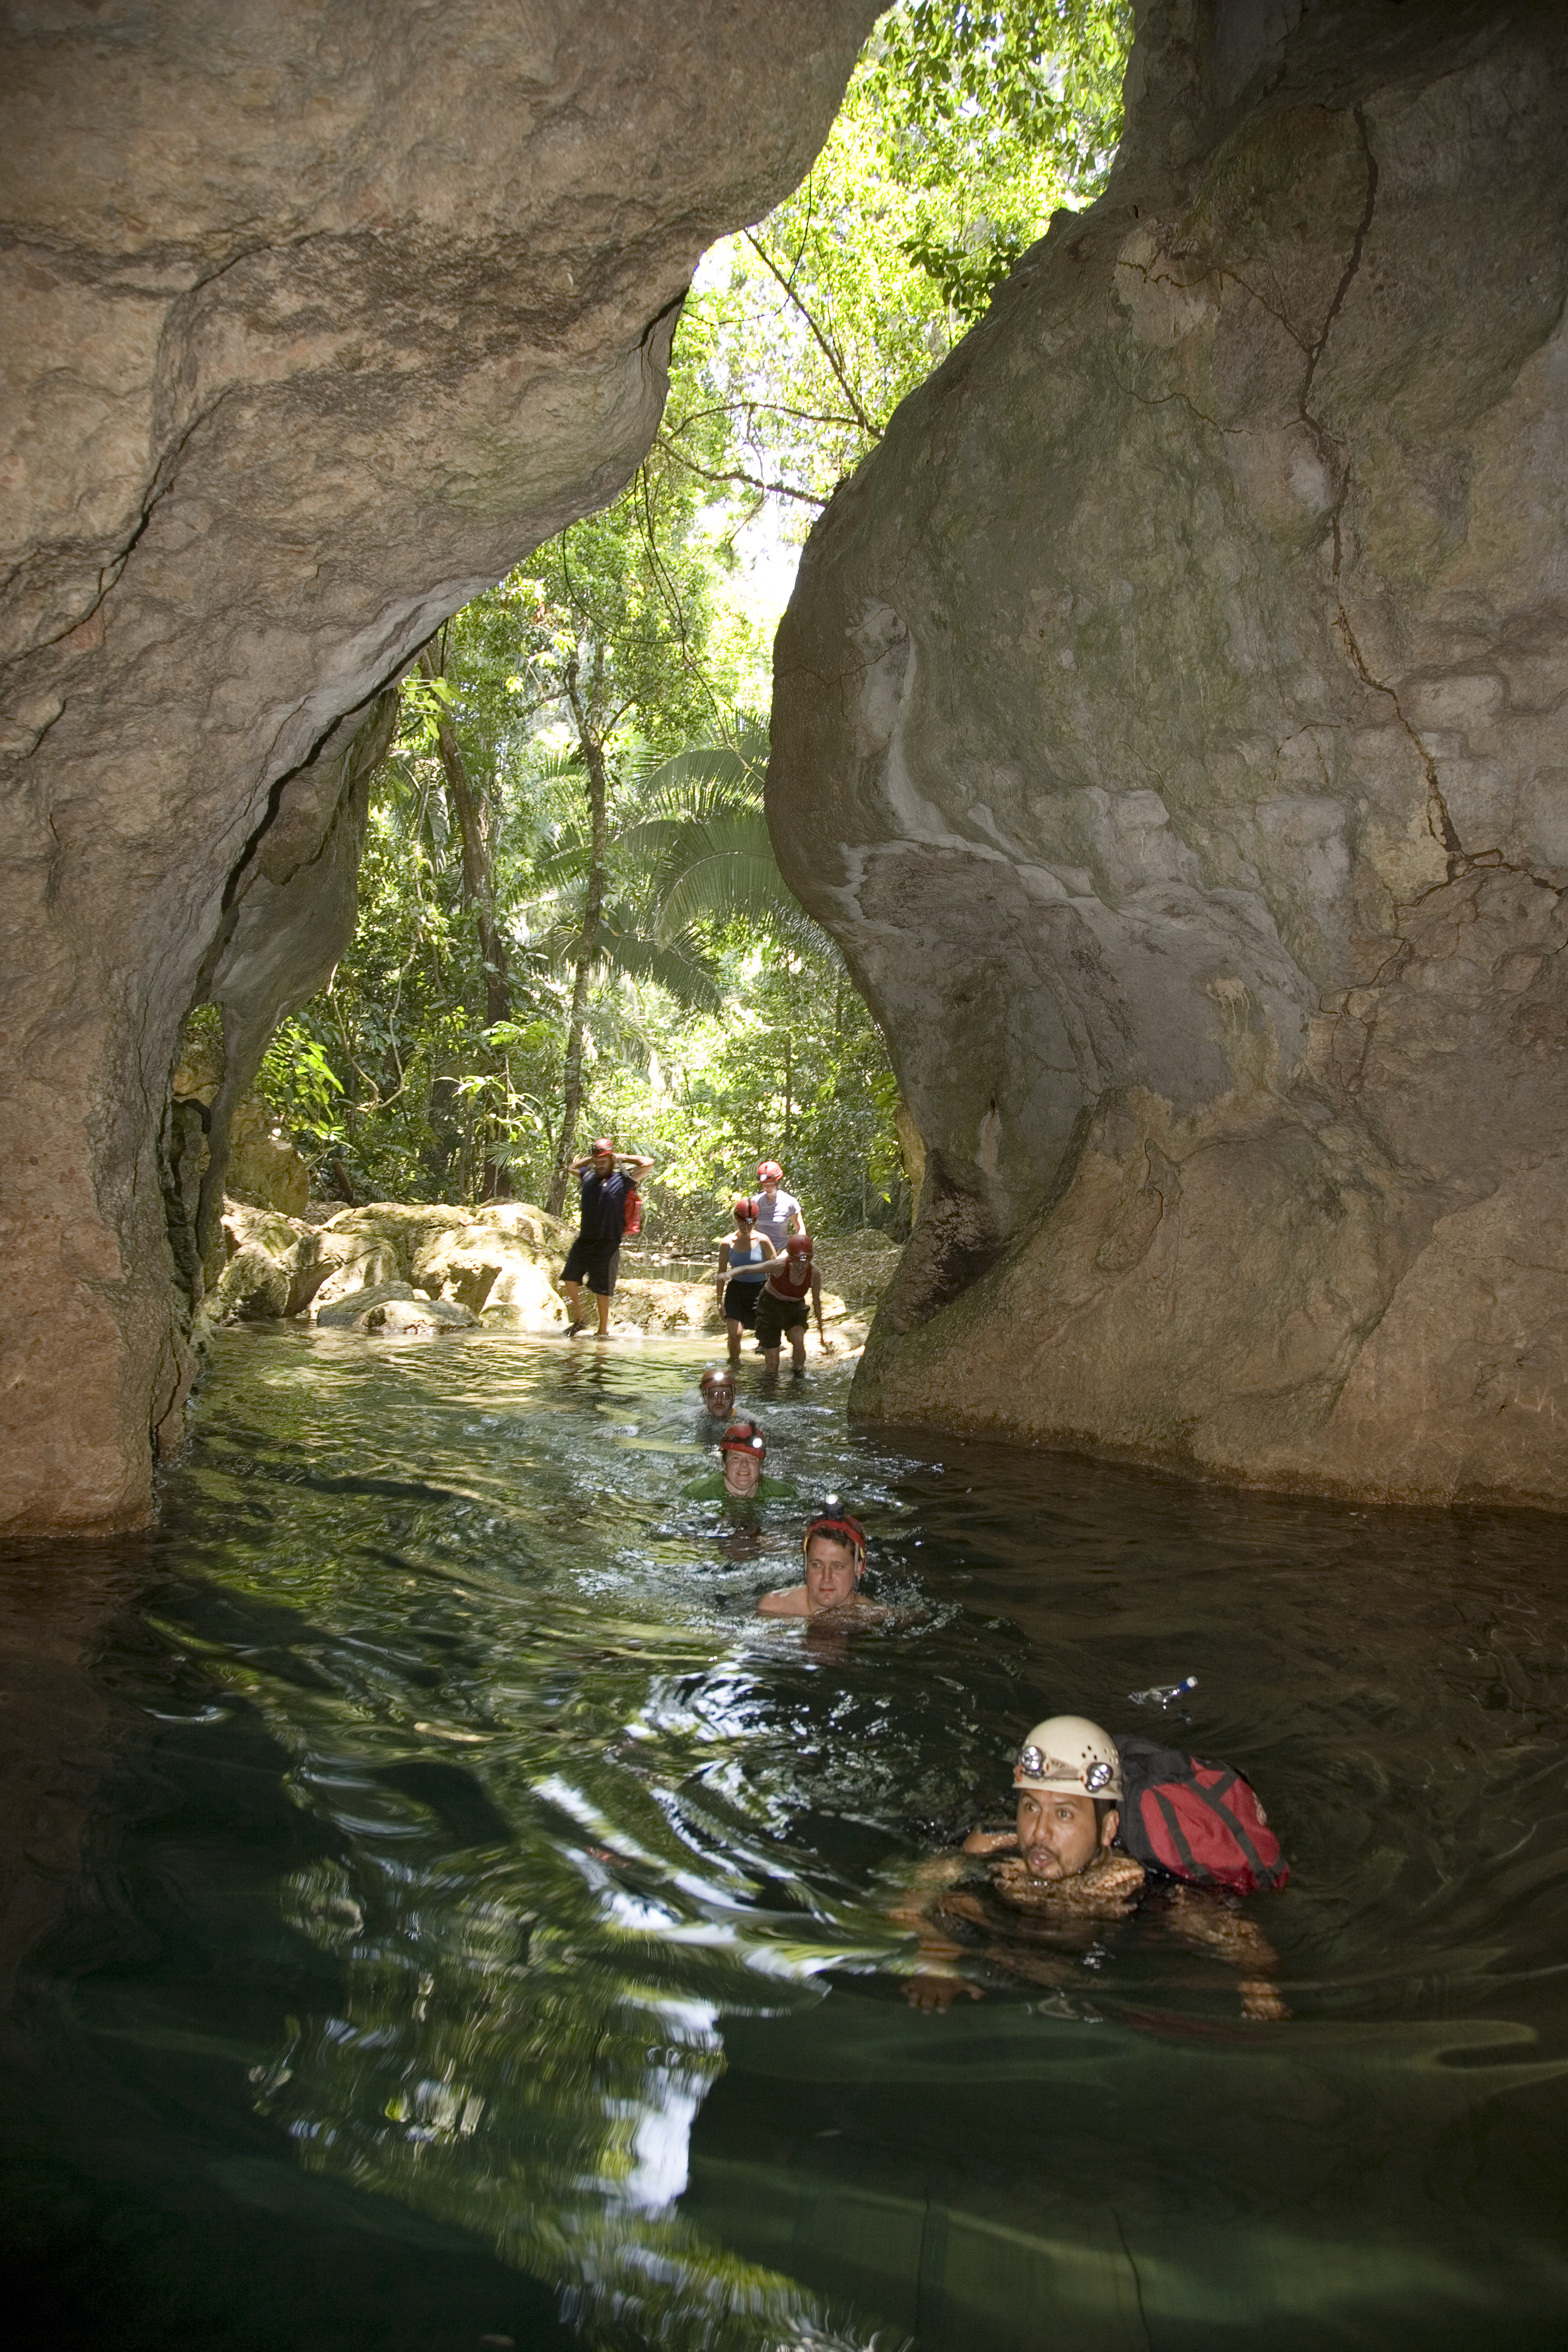 Swimming through the entrance to the ATM cave